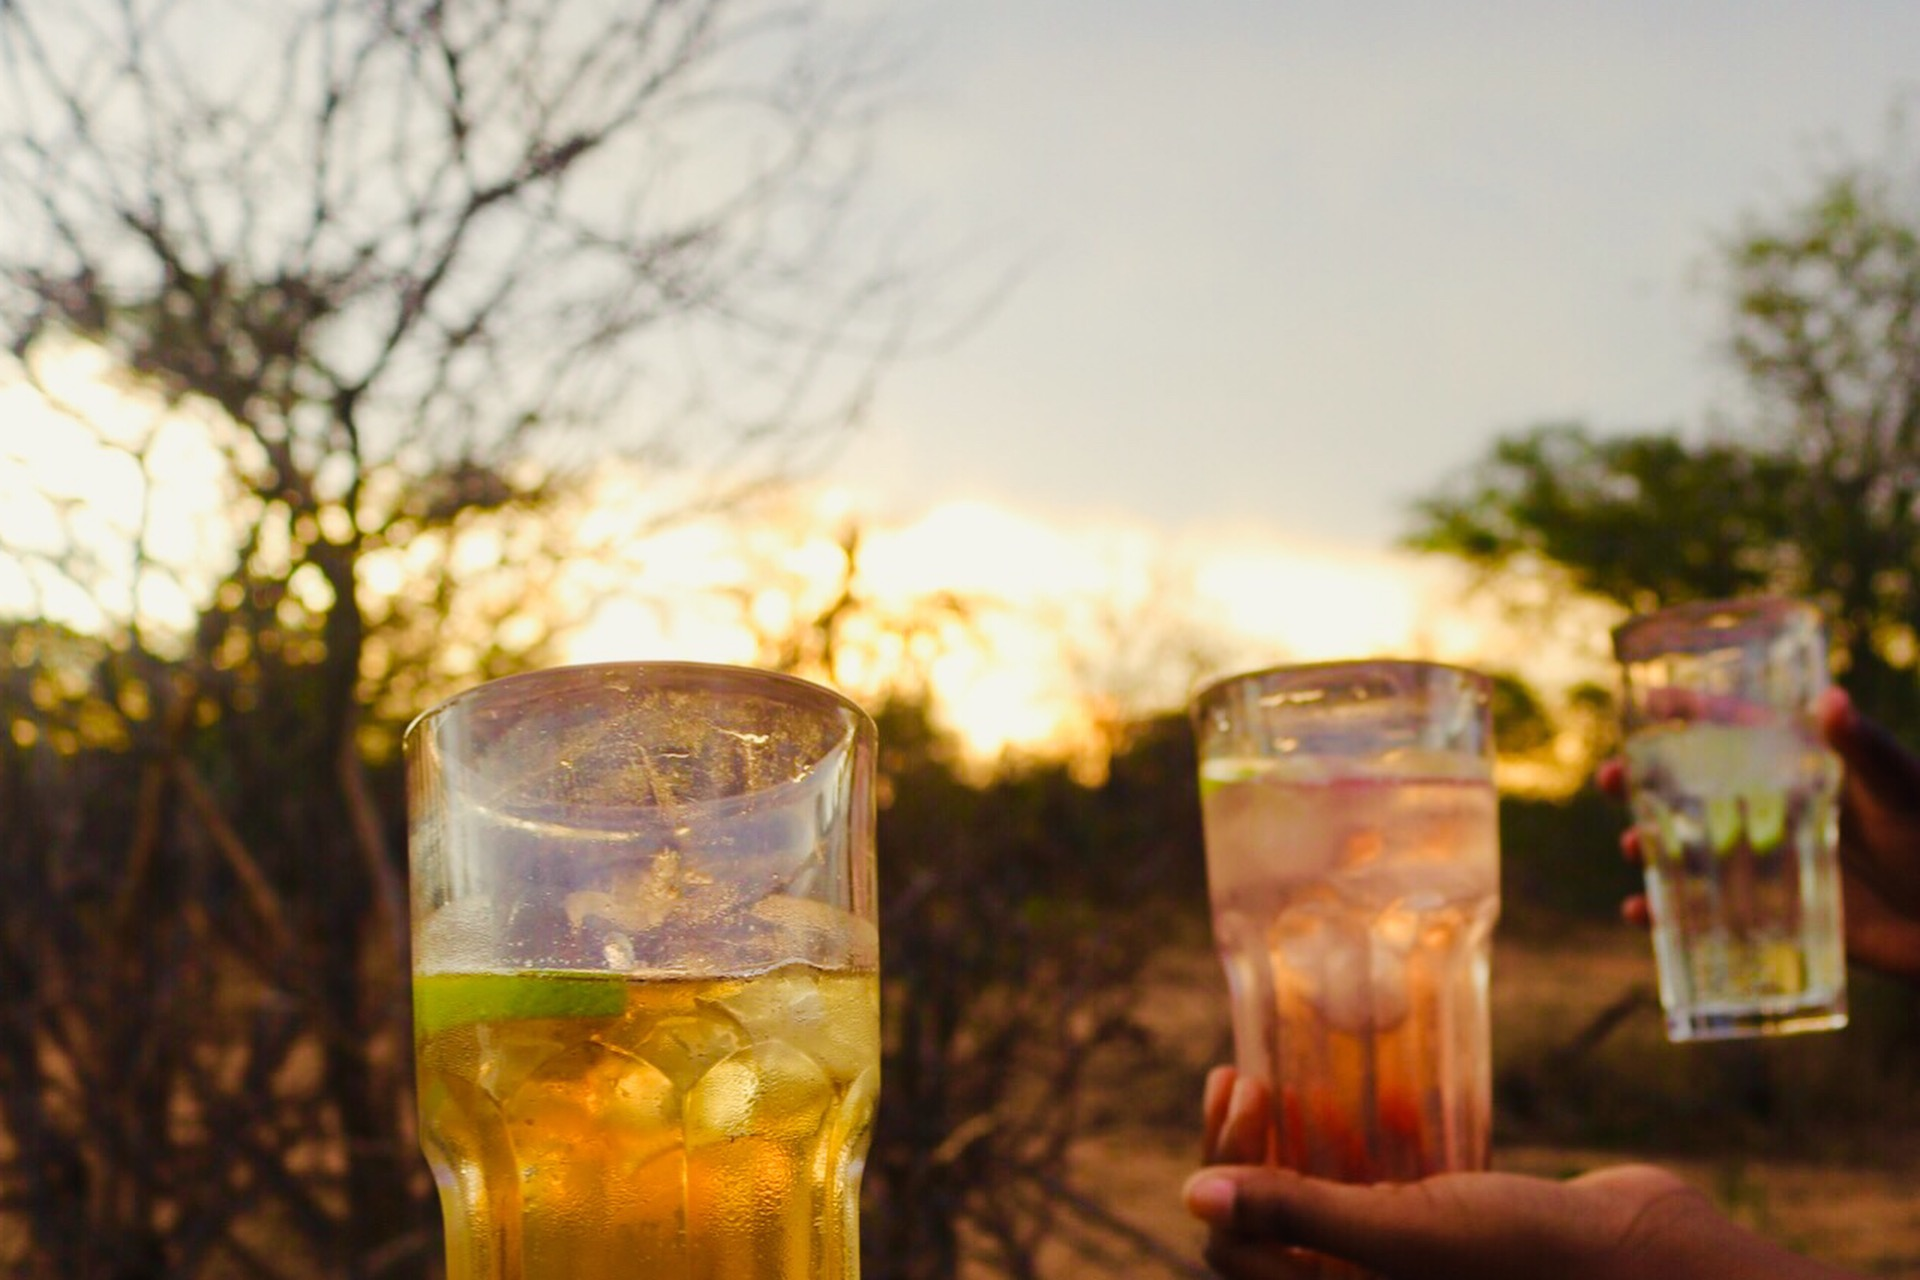 Gin and tonic in the Greater Kruger with my BaFaFa and her sister friends. #GetYouABestieWhoStopsDrinkingToLetYouCaptureTheMoment #notahashtag #alifechoice - Greater Kruger, South Africa